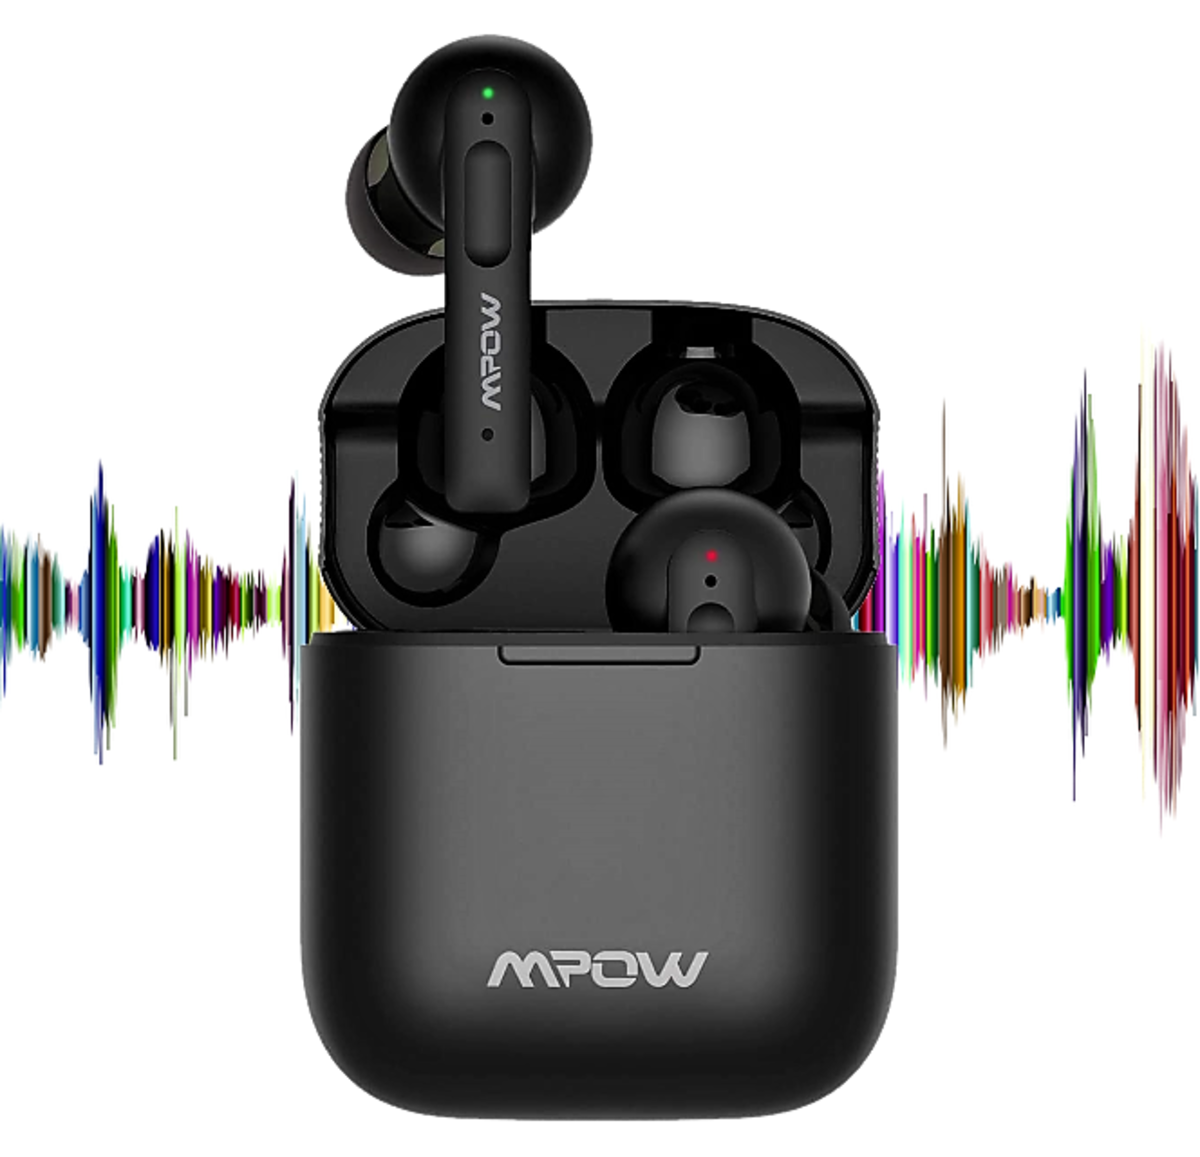 Mpow X3 Headphones Review: The Most Budget-Friendly ANC Earbuds